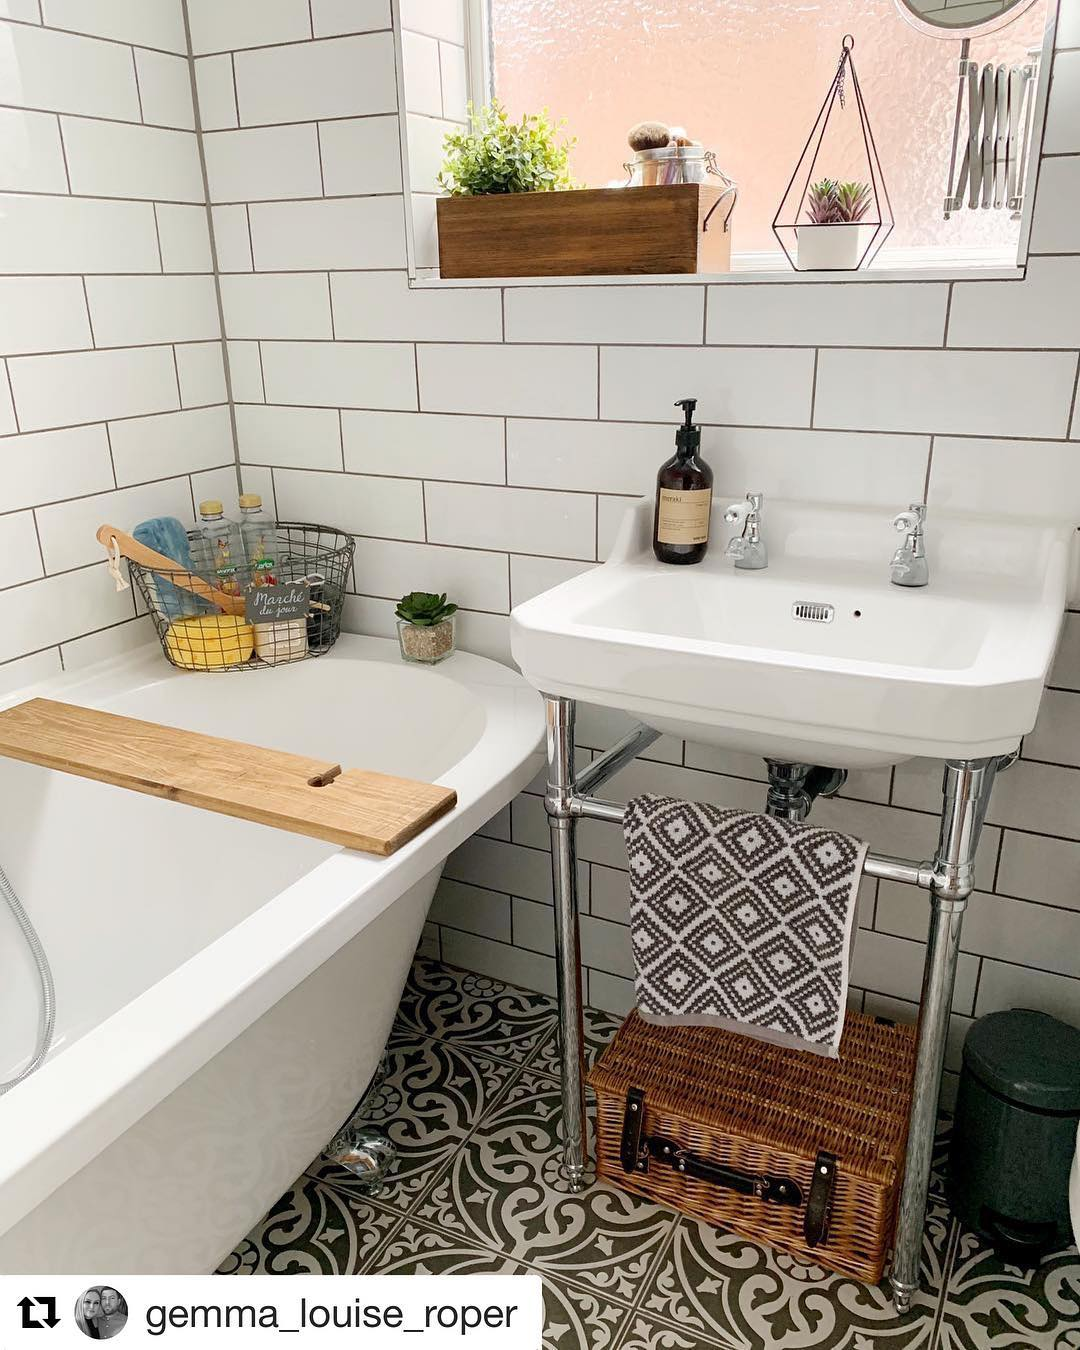 Small Bathroom Trends 2020: Photos And Videos Of Small ... on Small Bathroom Ideas 2020 id=82869